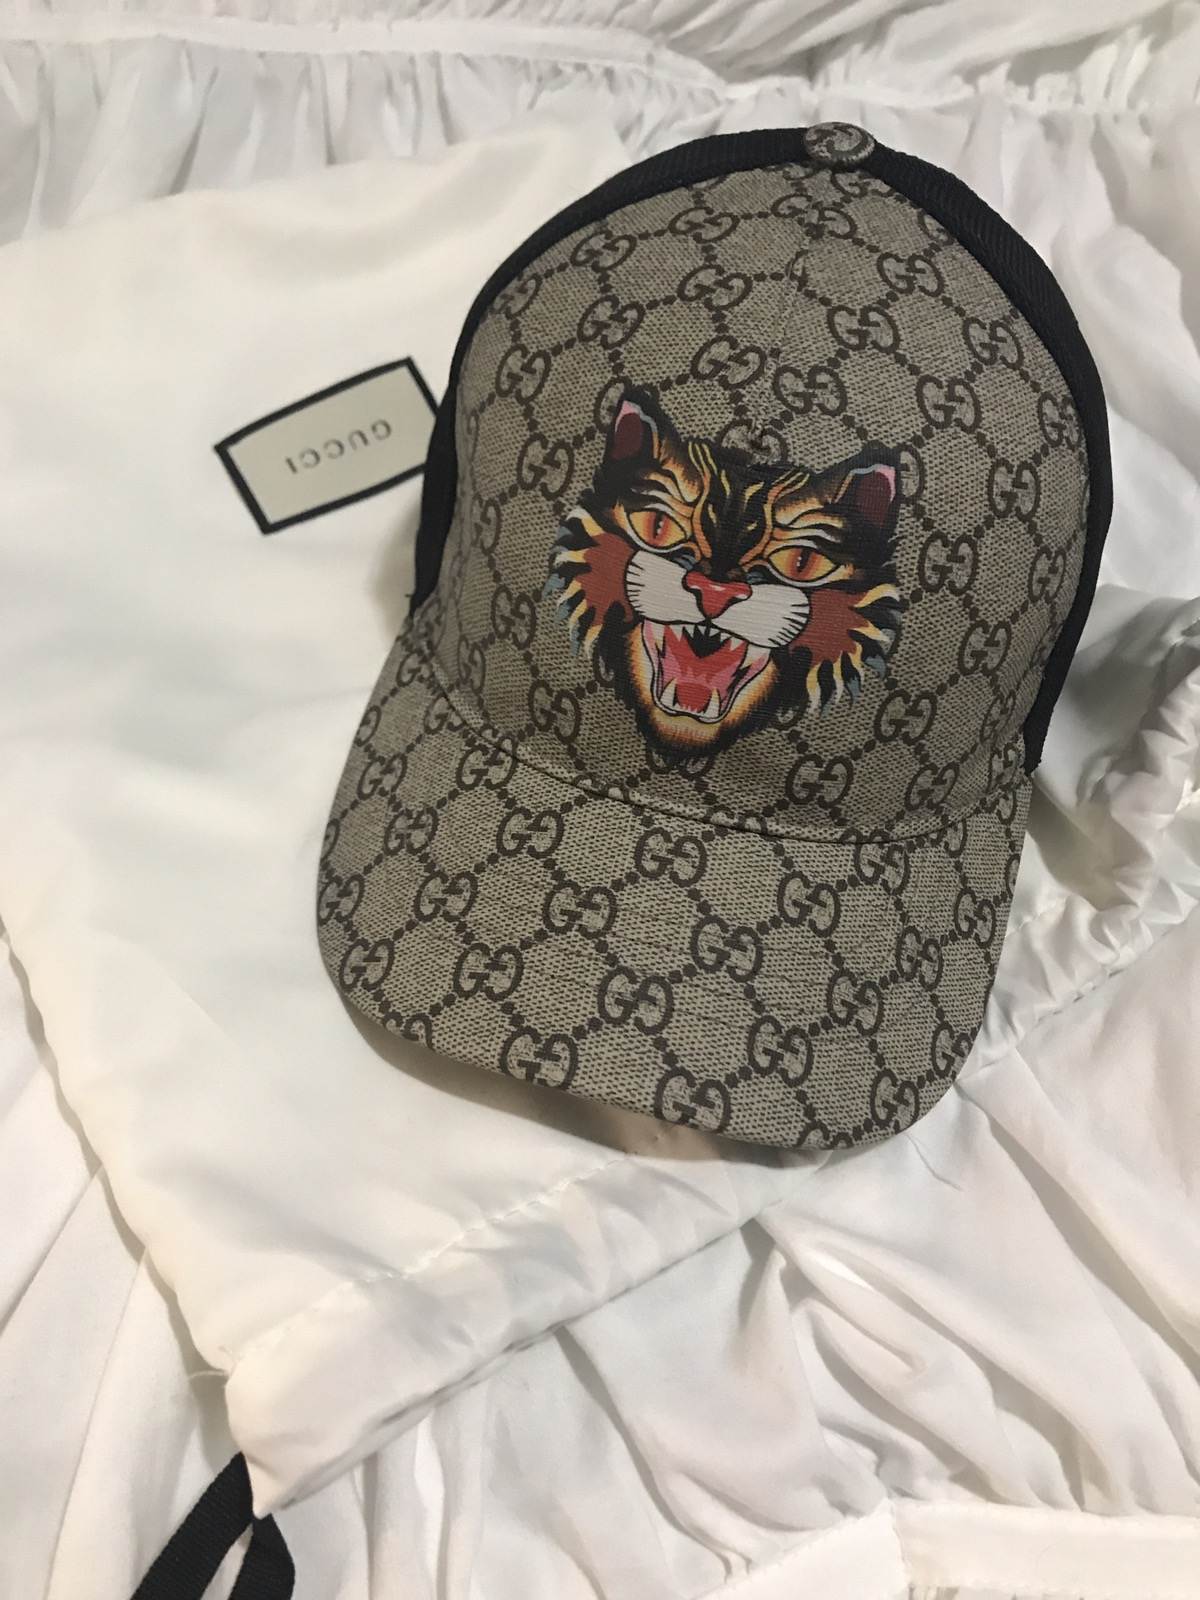 b19ef52c6ea157 Gucci Gg Supreme Angry Cat Hat | Grailed